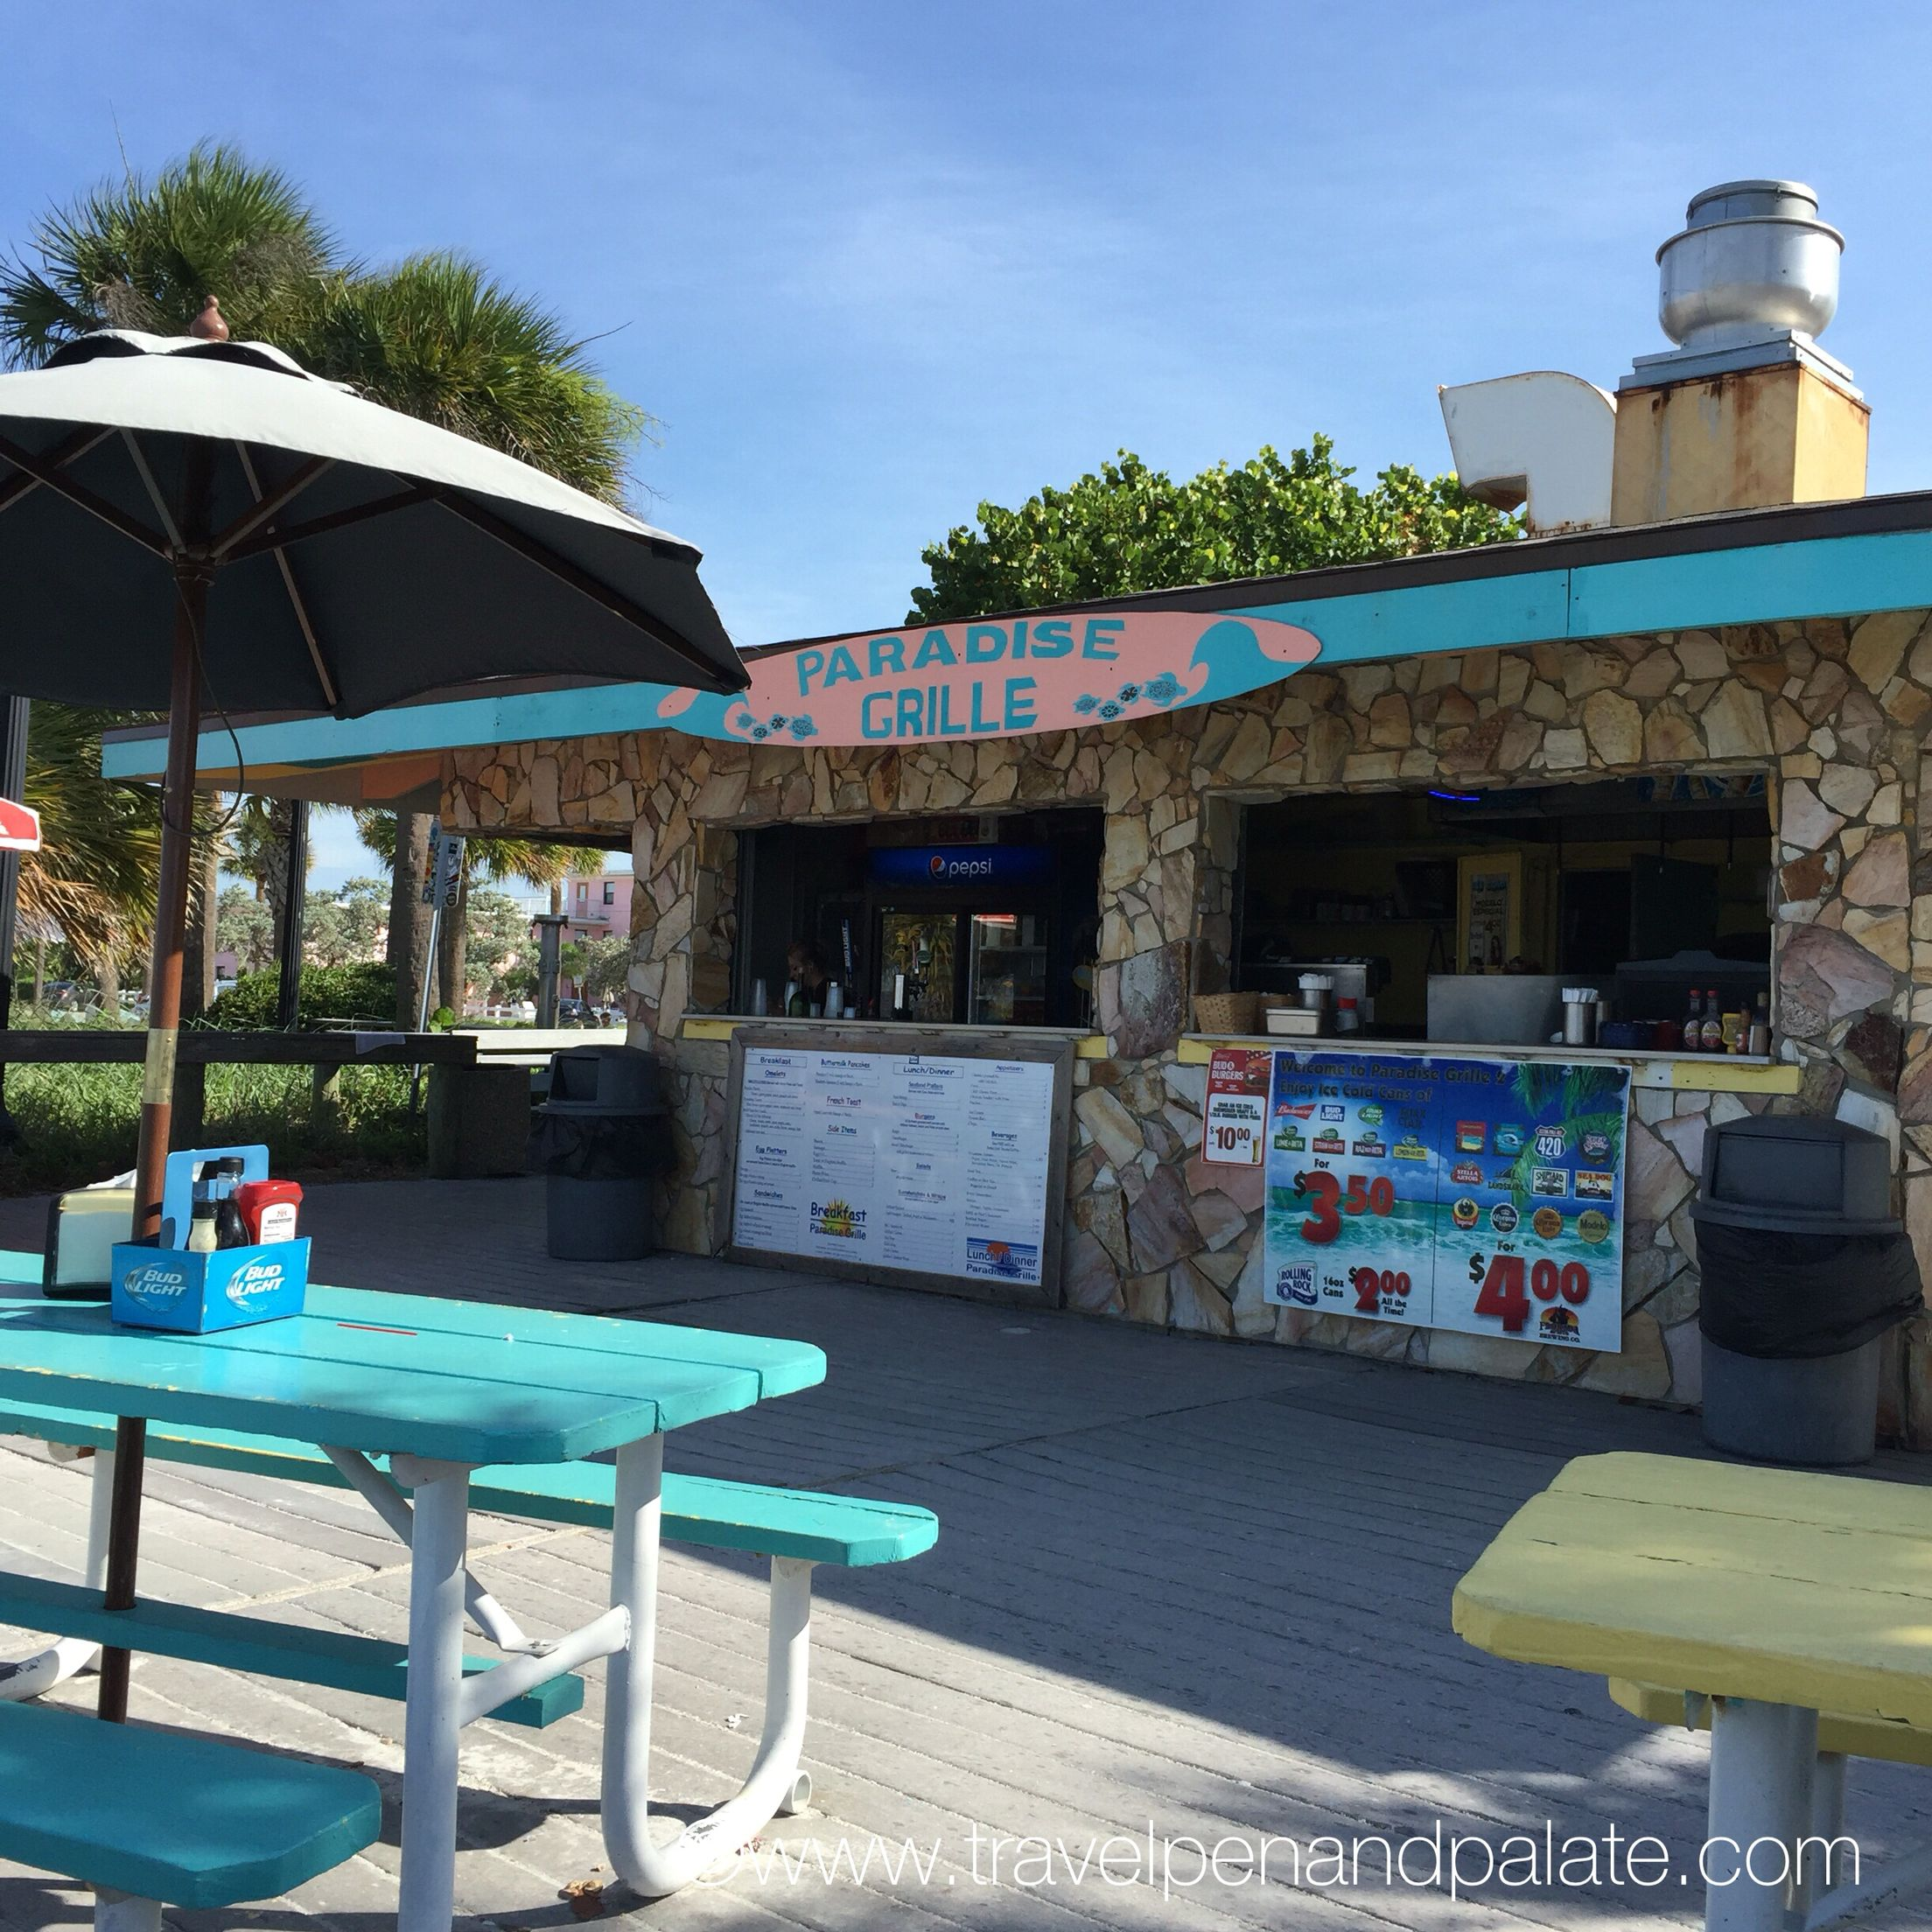 Breakfast on St. Pete Beach, Florida at Paradise Grille